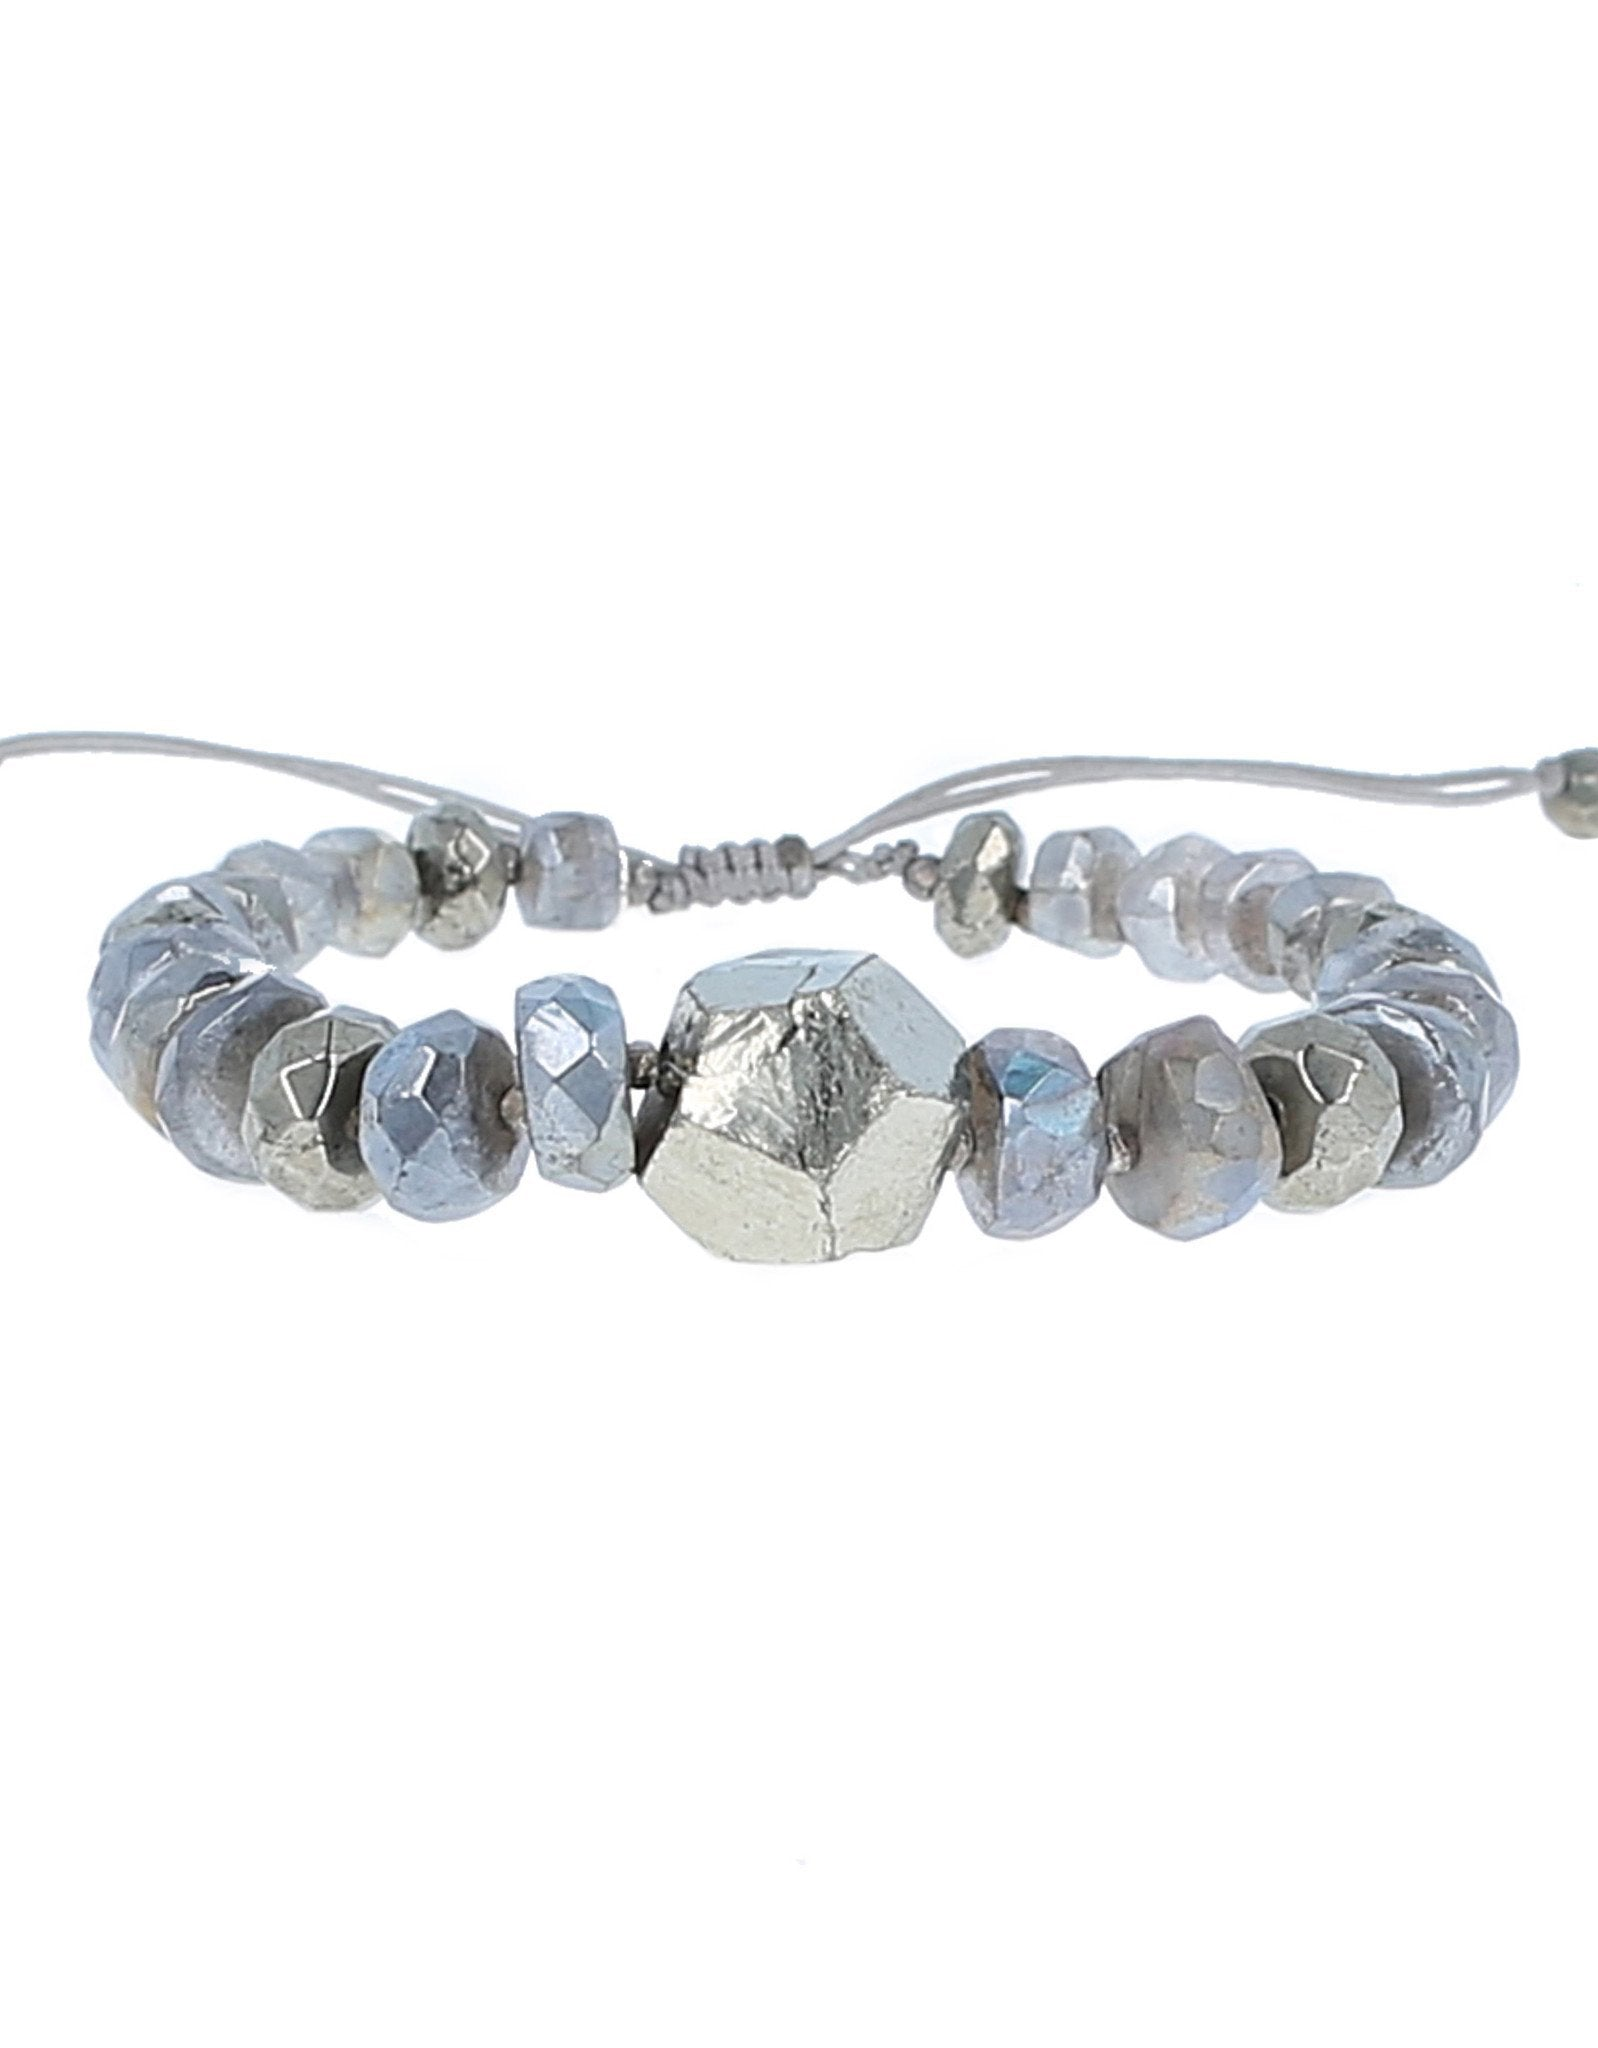 Women outfit in a bracelet rental from Chan Luu called Mystic Labradorite Adjustable Bracelet